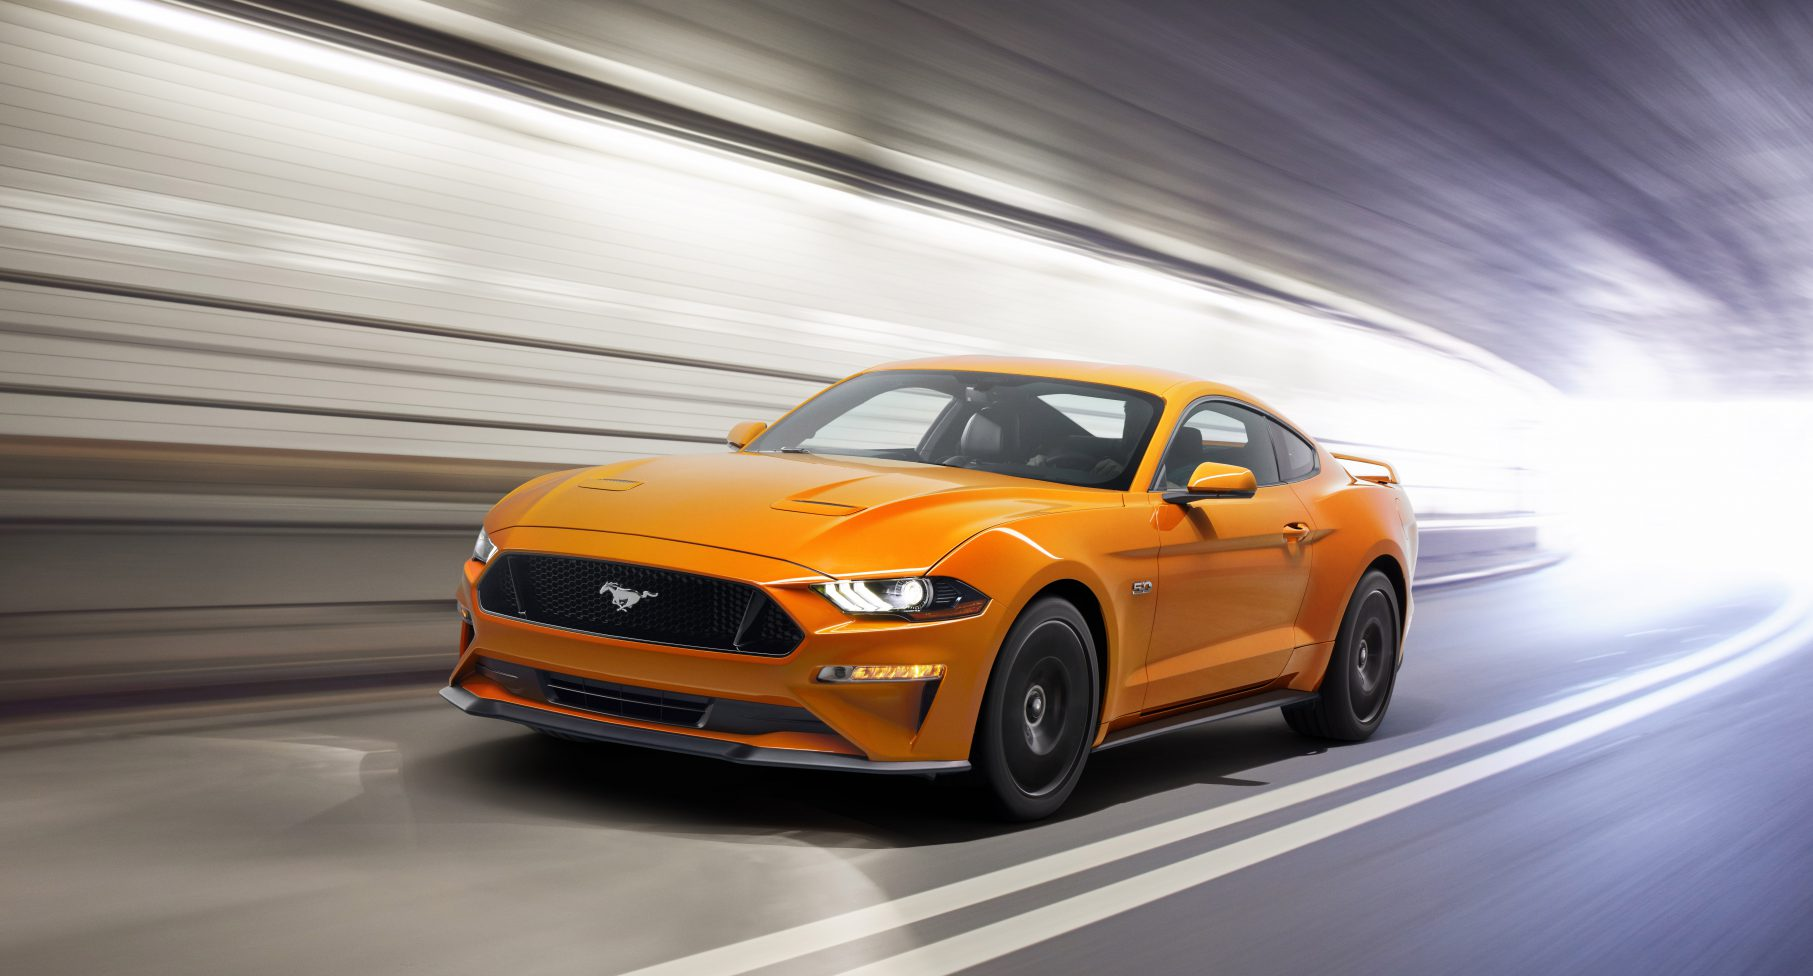 2018 Ford Mustang Reveals More Than Just a Controversial Face